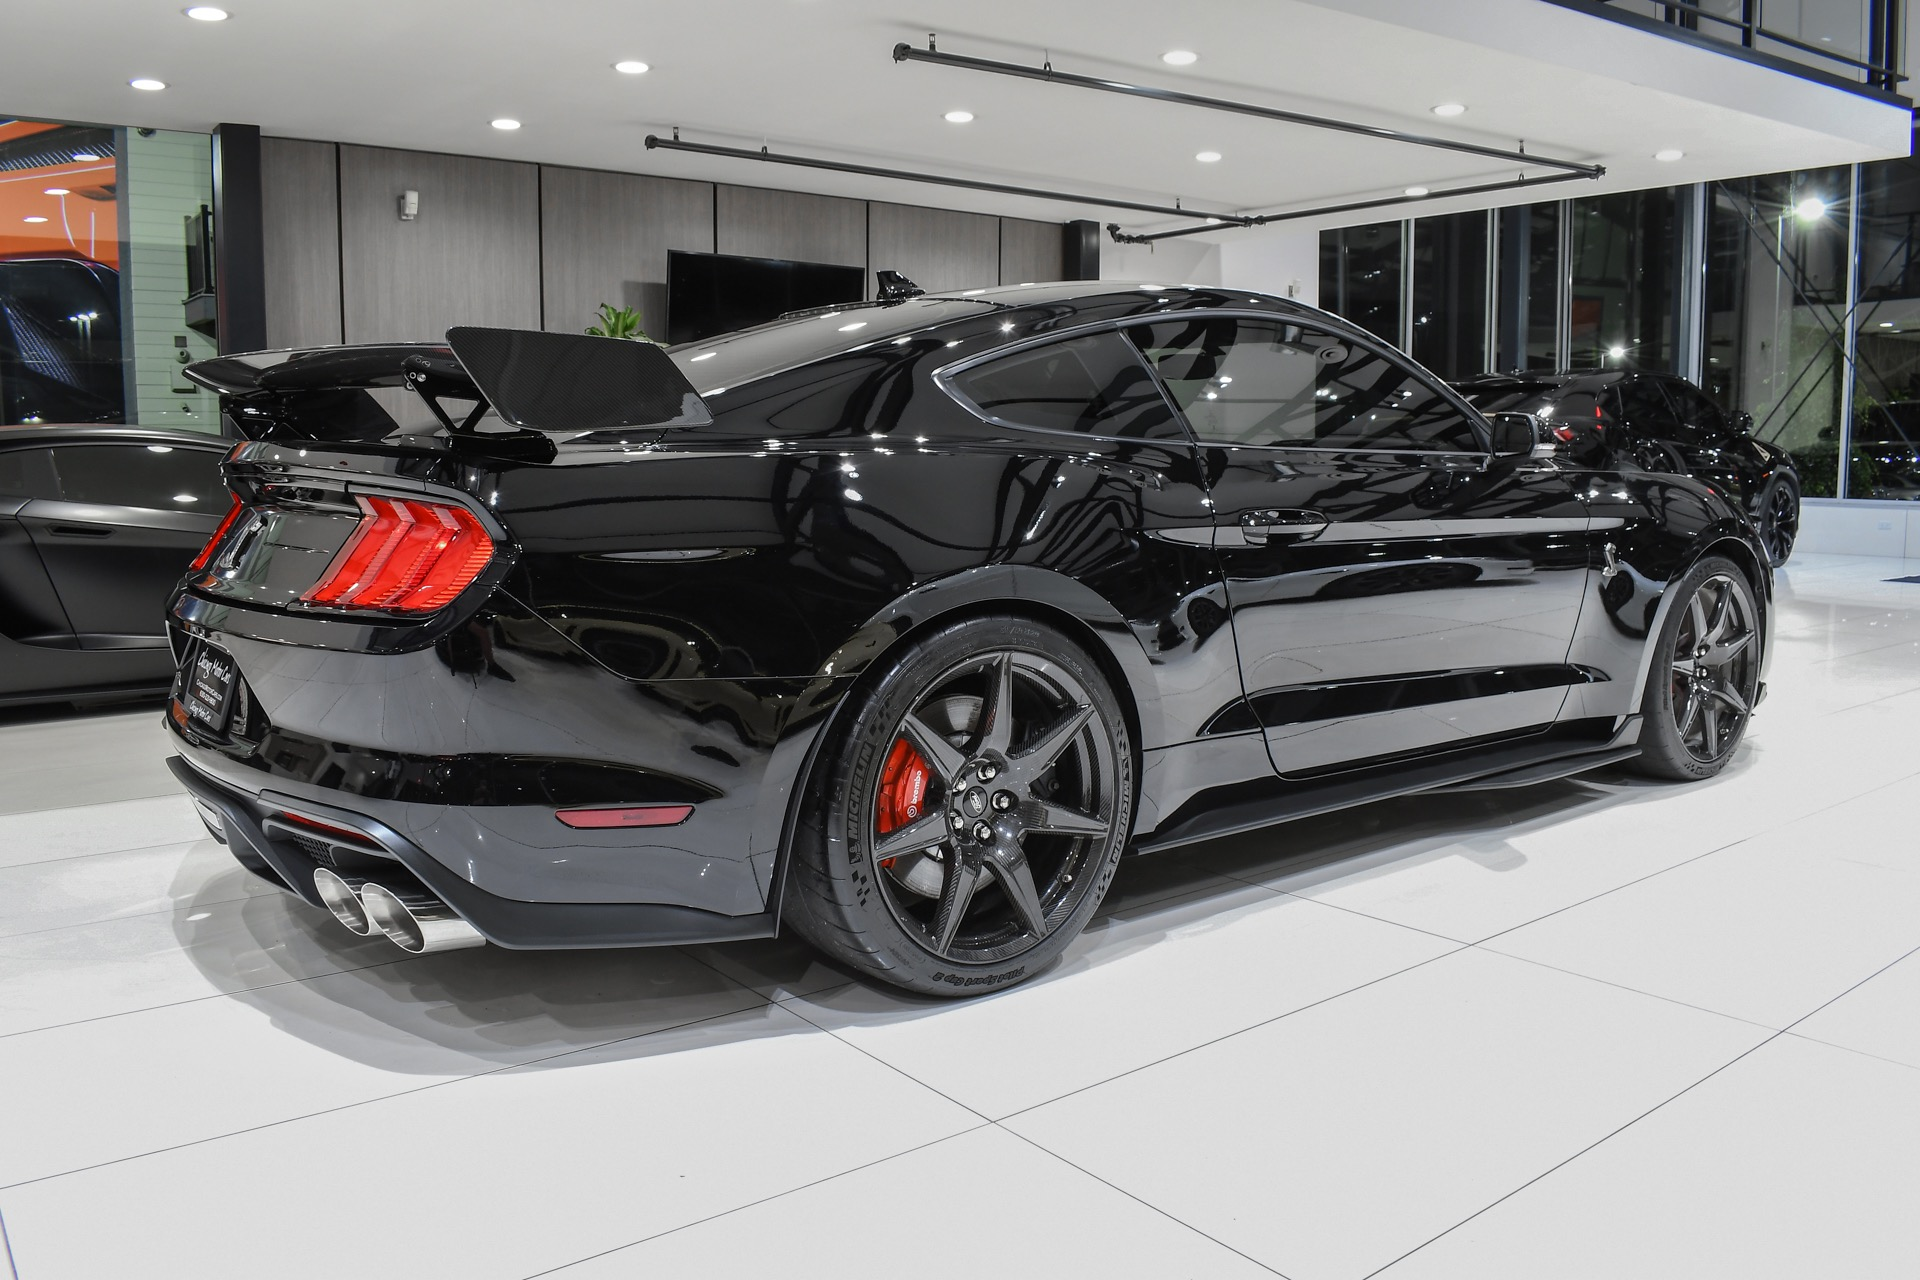 Used-2021-Ford-Mustang-Shelby-GT500-GOLDEN-TICKET-CARBON-FIBER-TRACK-PKG-ONLY-172-Miles